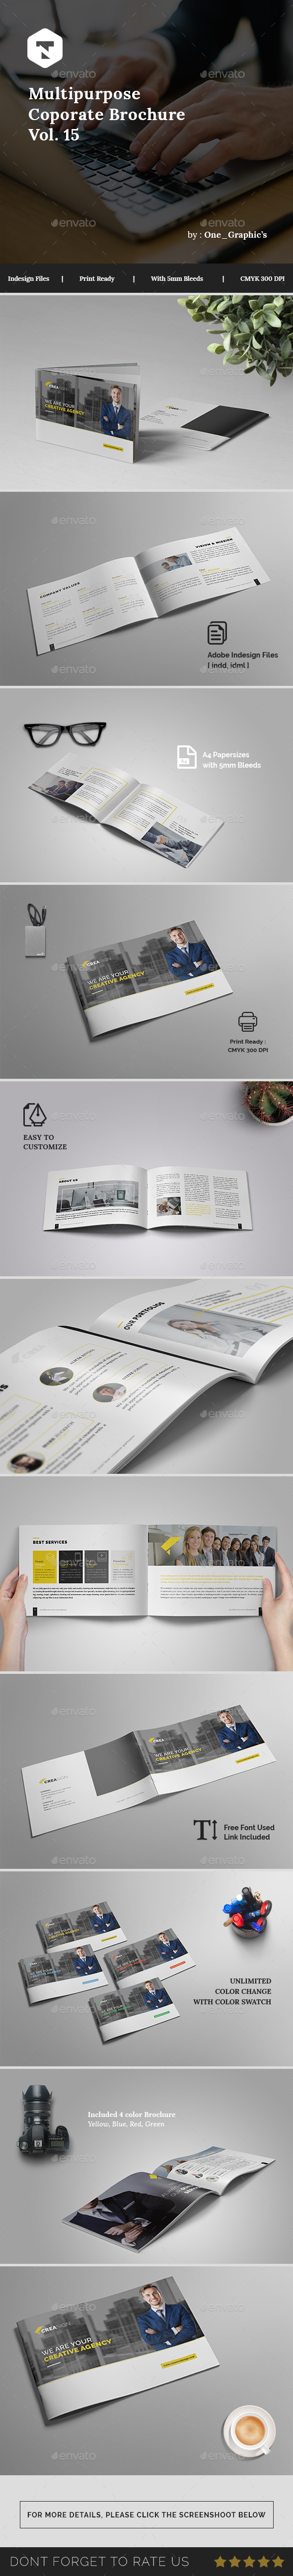 Multipurpose Corporate Brochure Vol. 15 - Brochures Print Templates